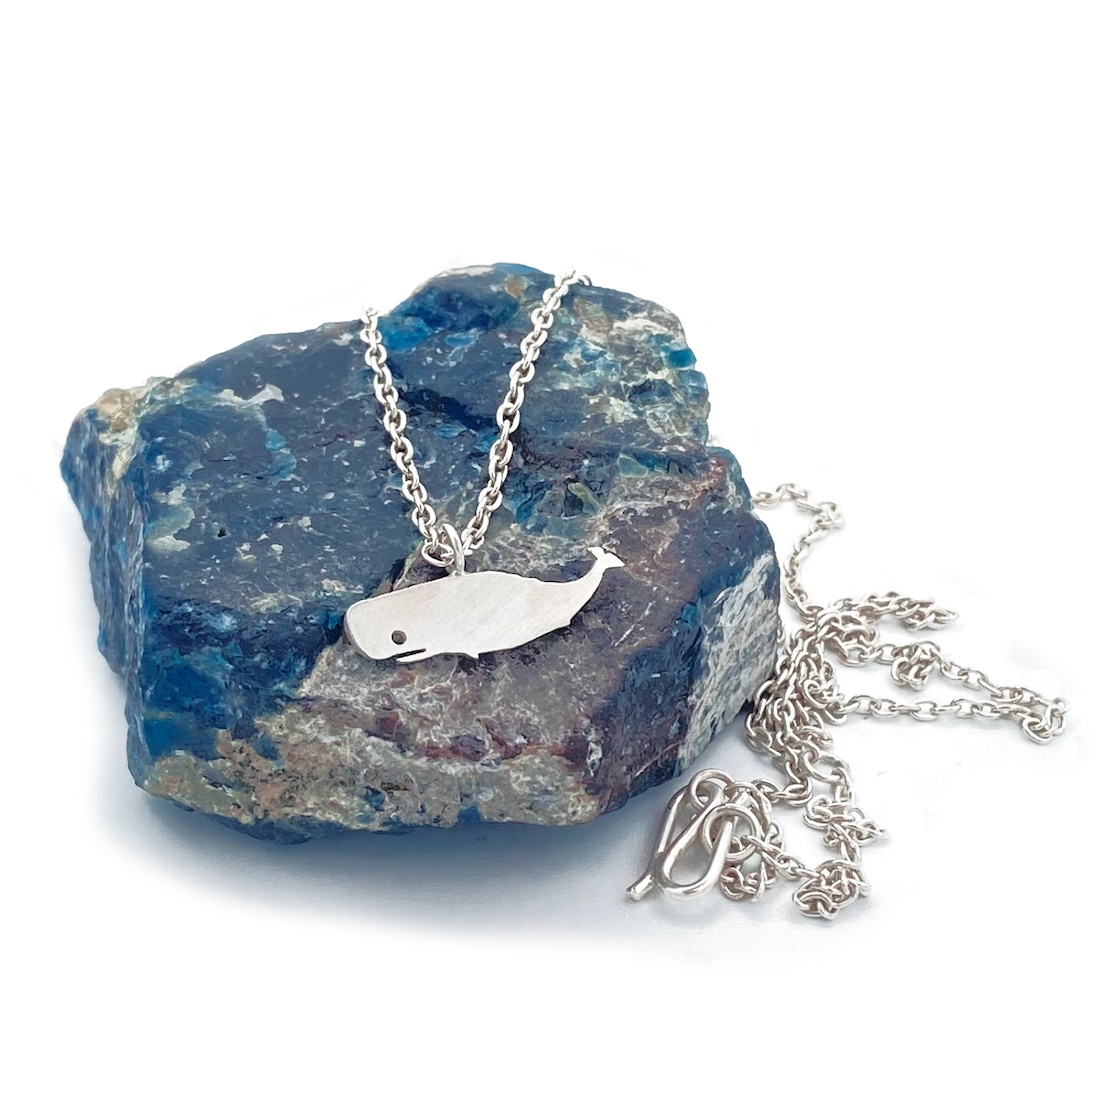 Whale Necklace | Colar Baleia